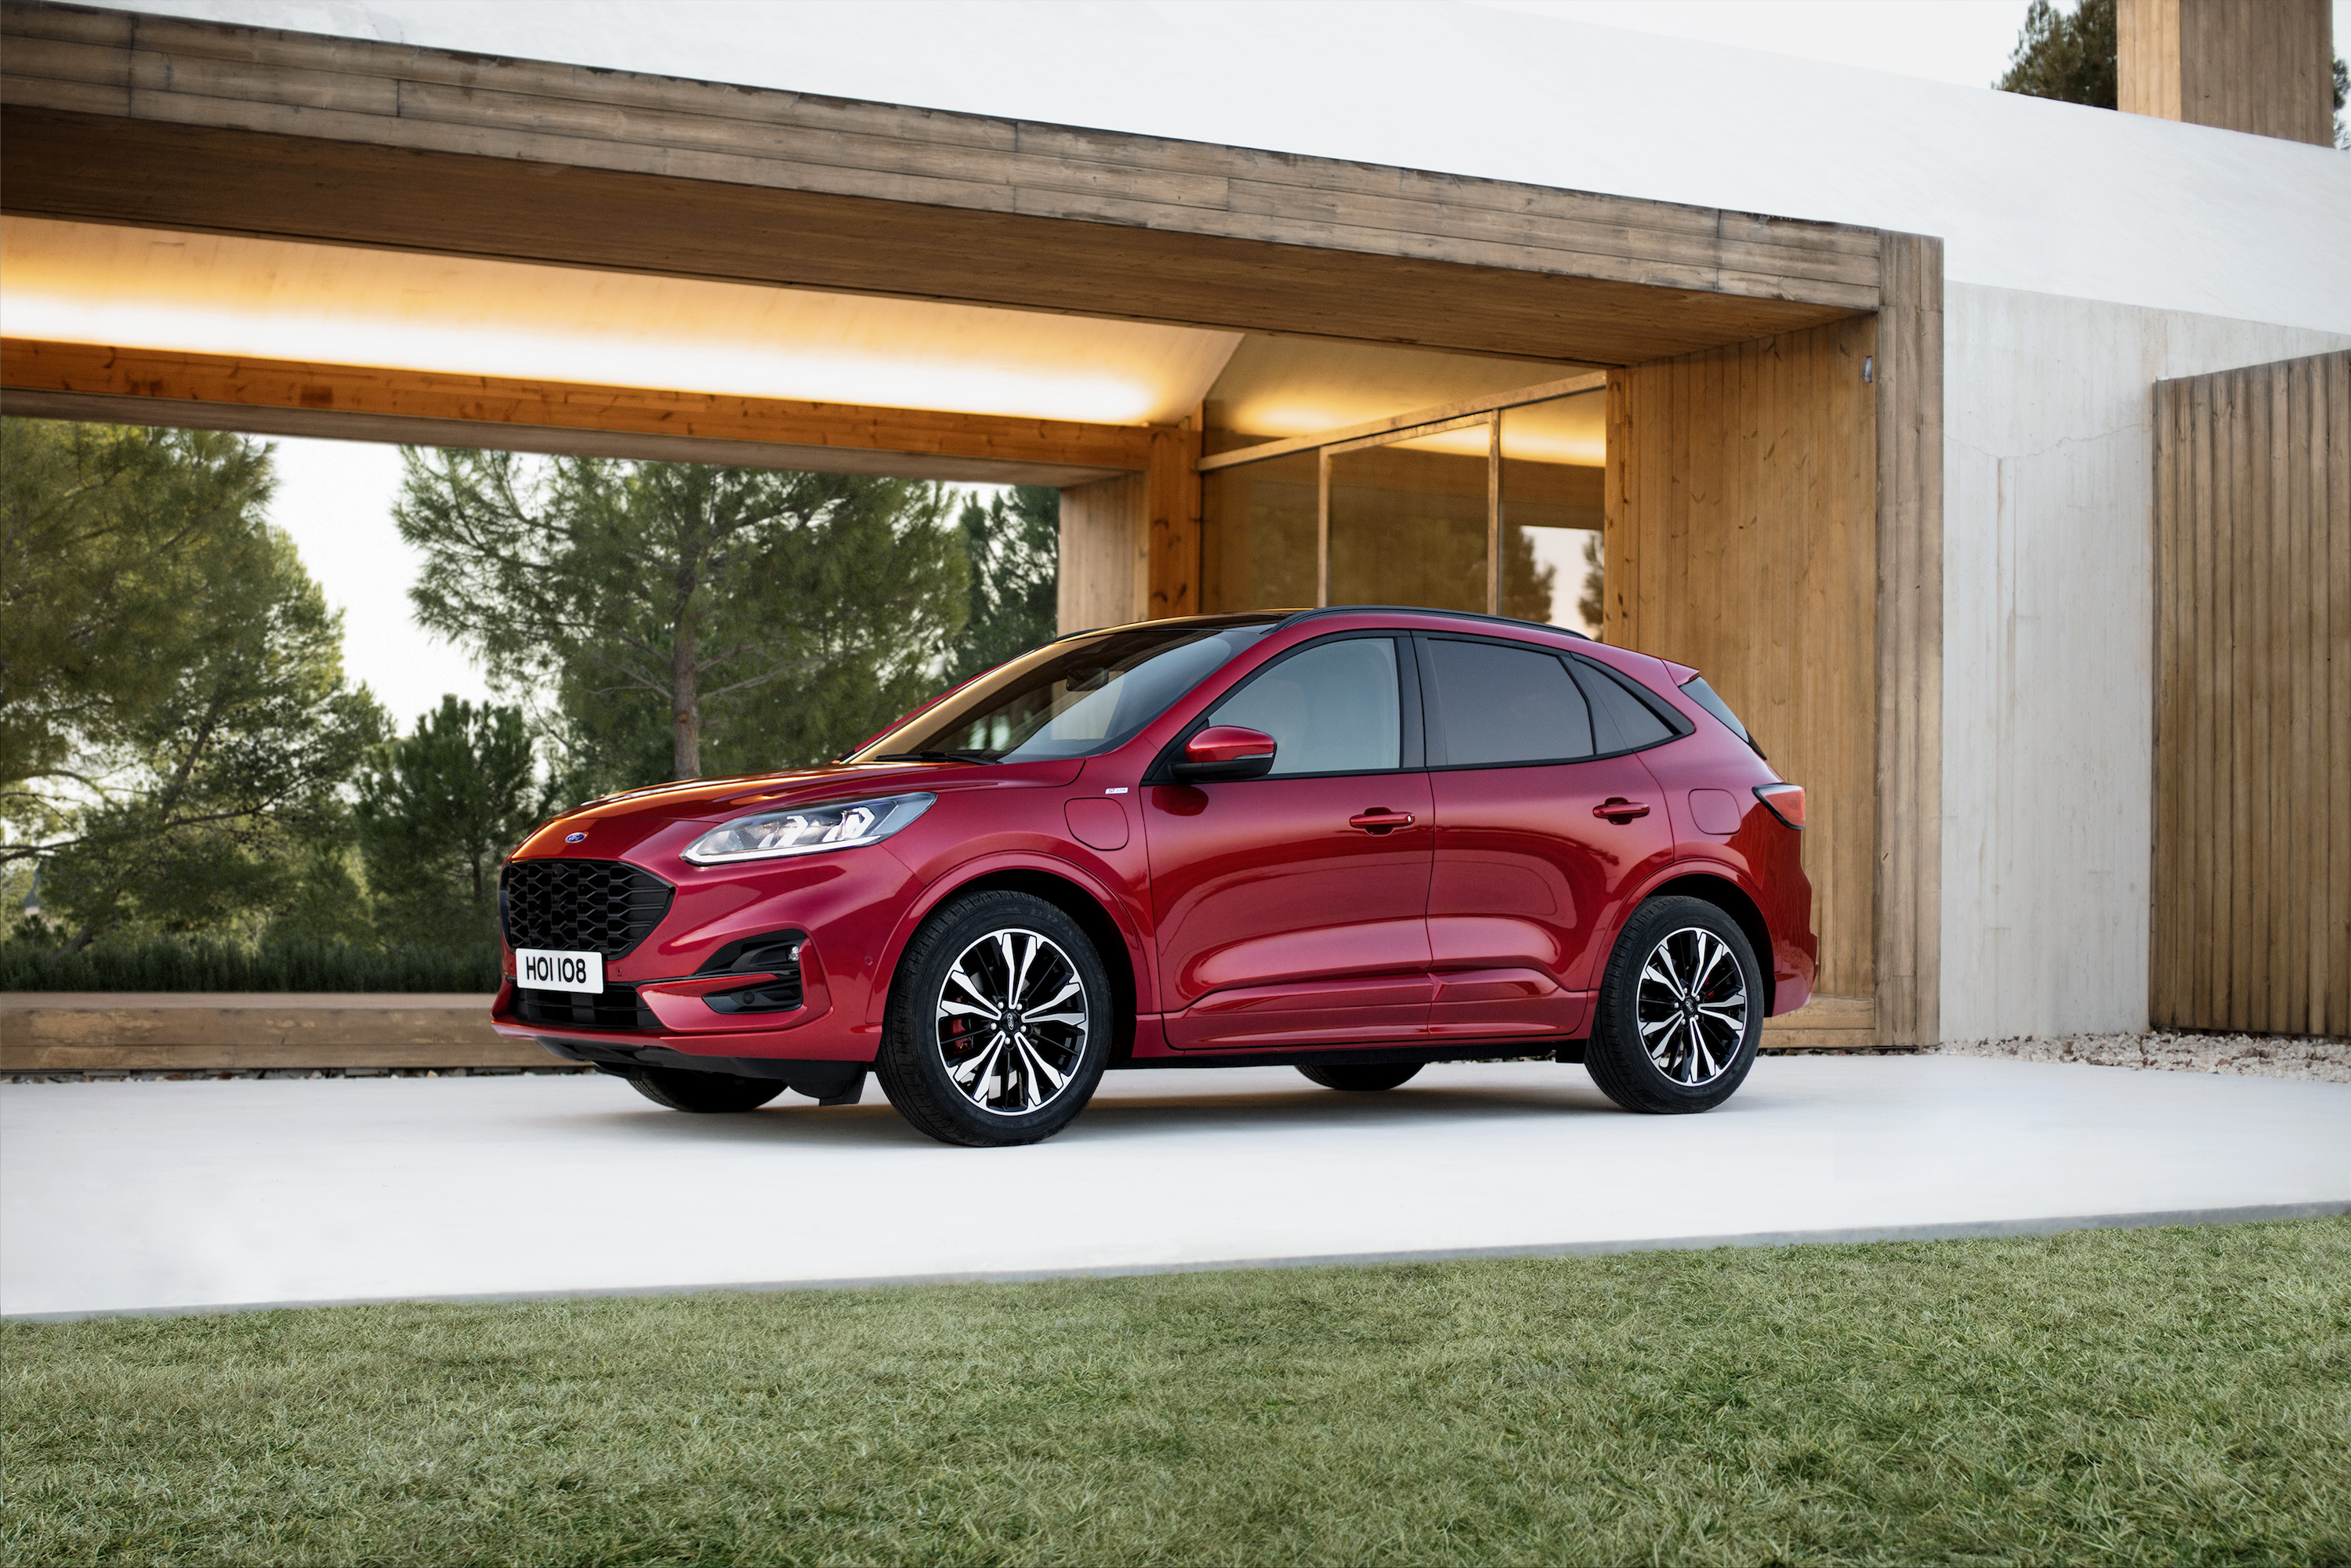 2020 Ford Kuga Hybrid Specs And Release Date >> 2020 Ford Kuga Revealed With Range Of Electrified Powertrain Options